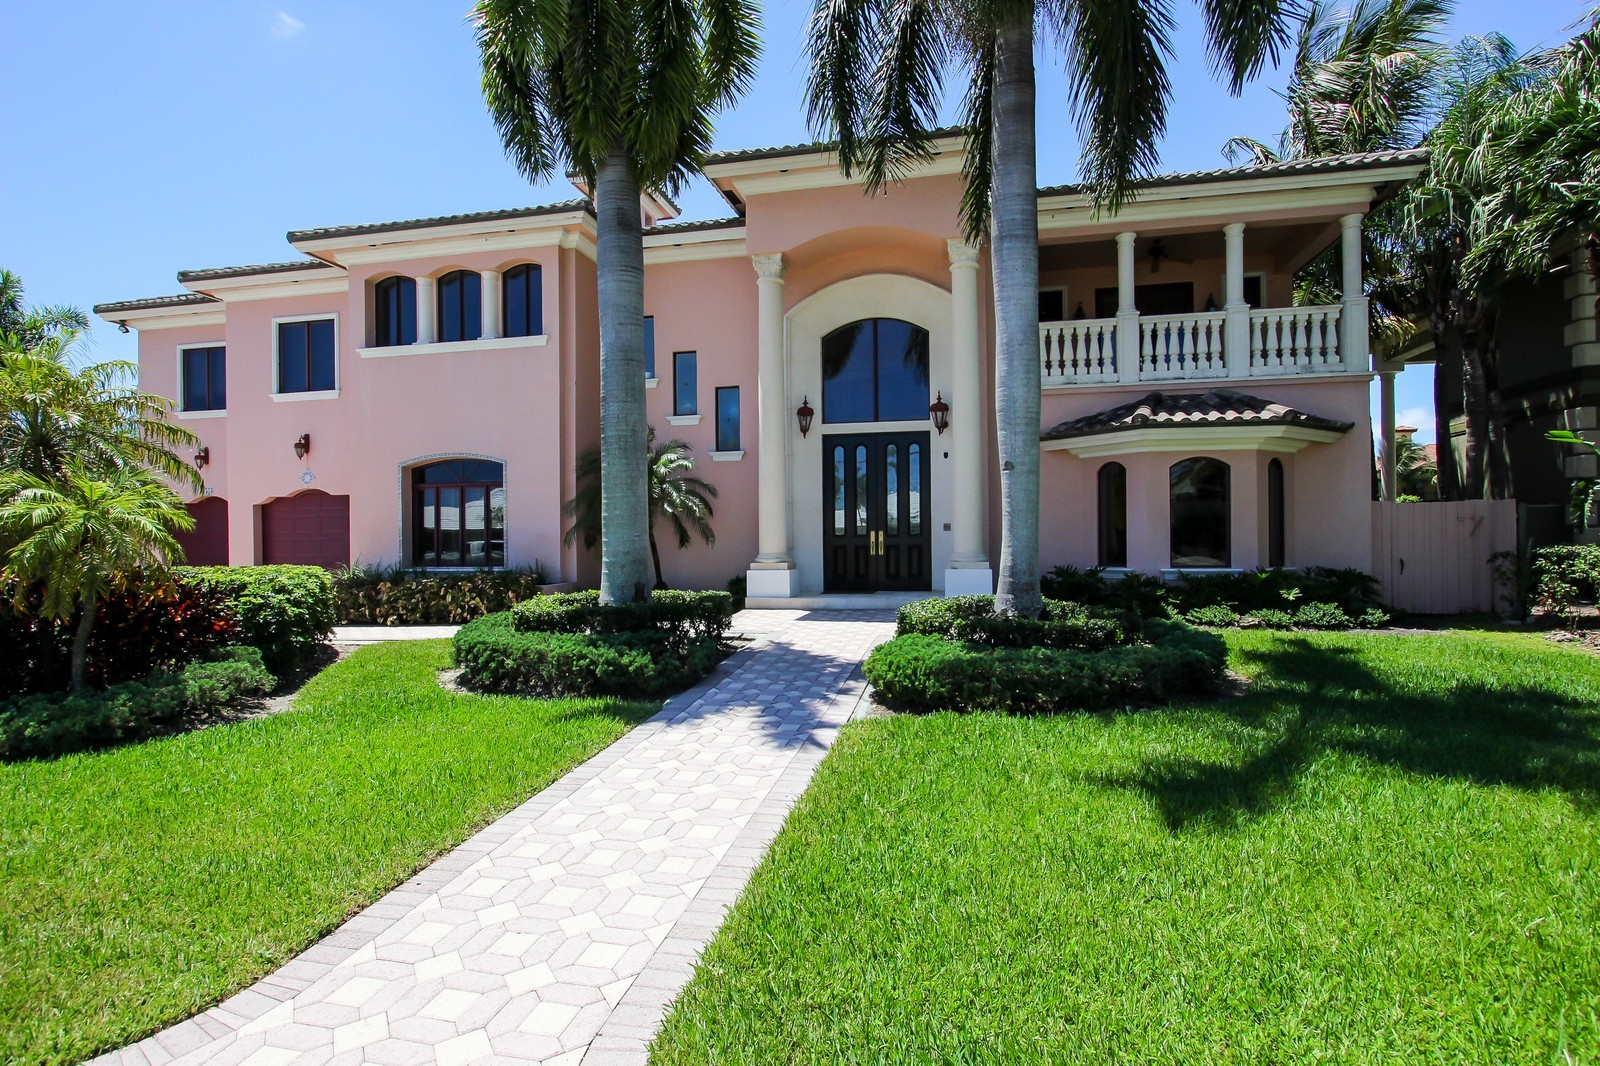 Real Estate Photography - 3310 NE 58th St, Fort Lauderdale, FL, 33308 - Front View